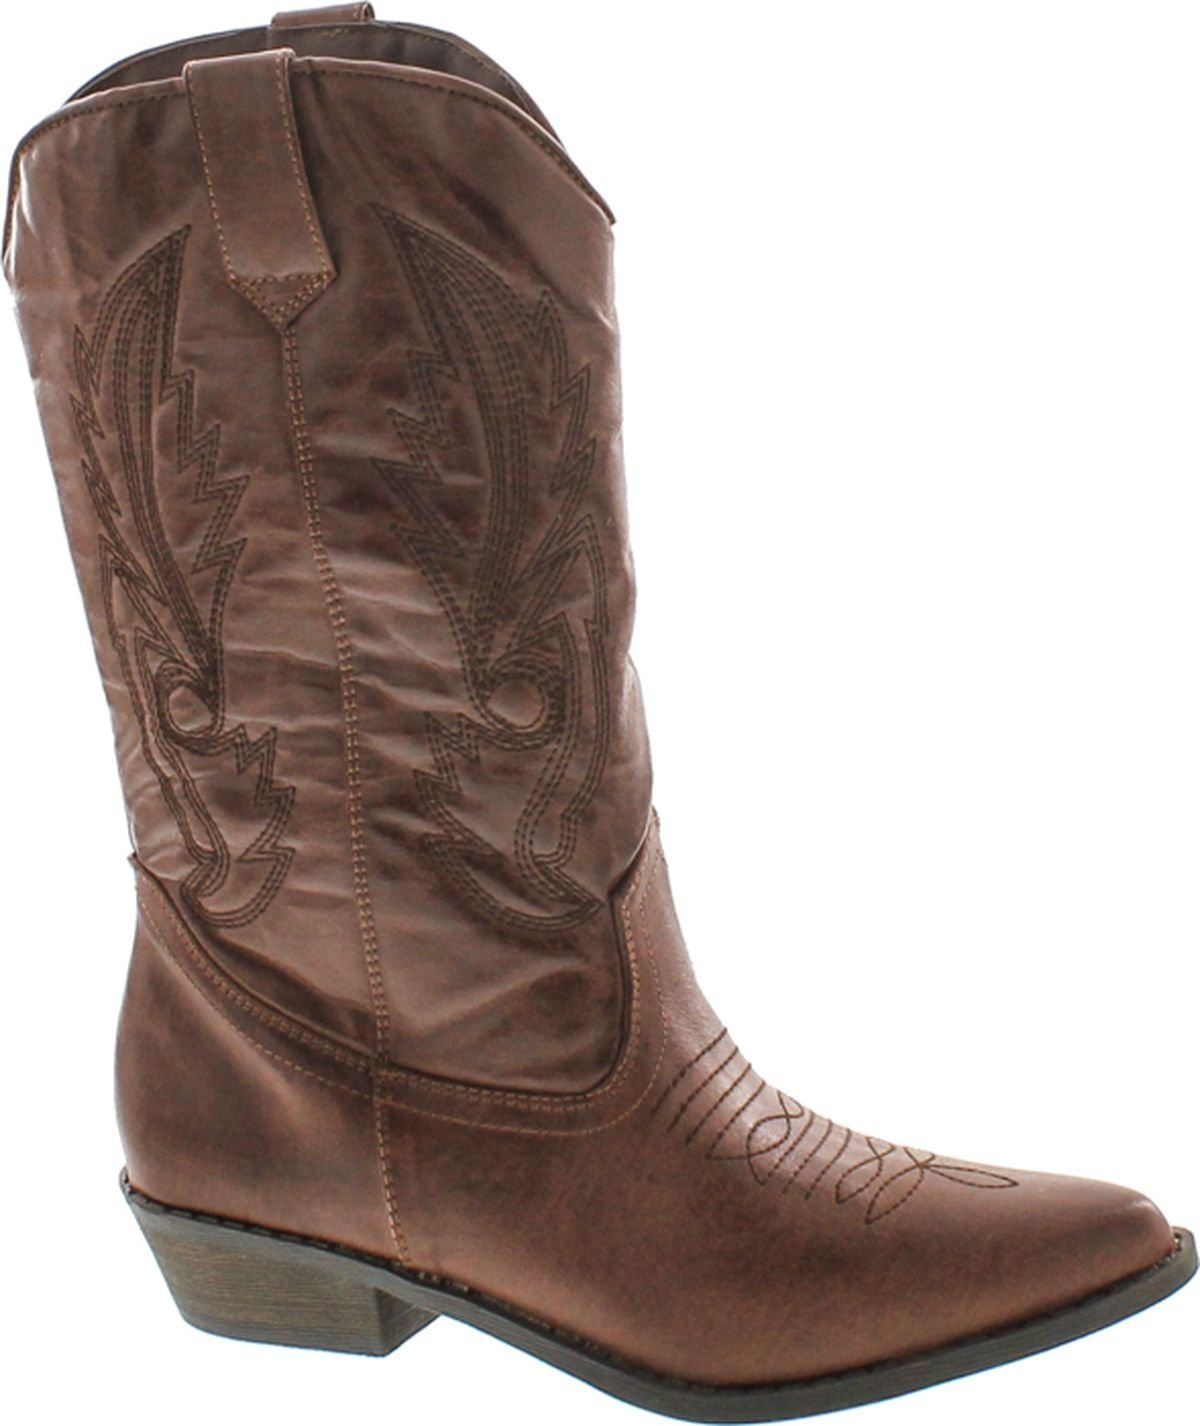 Coconuts by Matisse Women's Gaucho Boot,Brown,9 M US